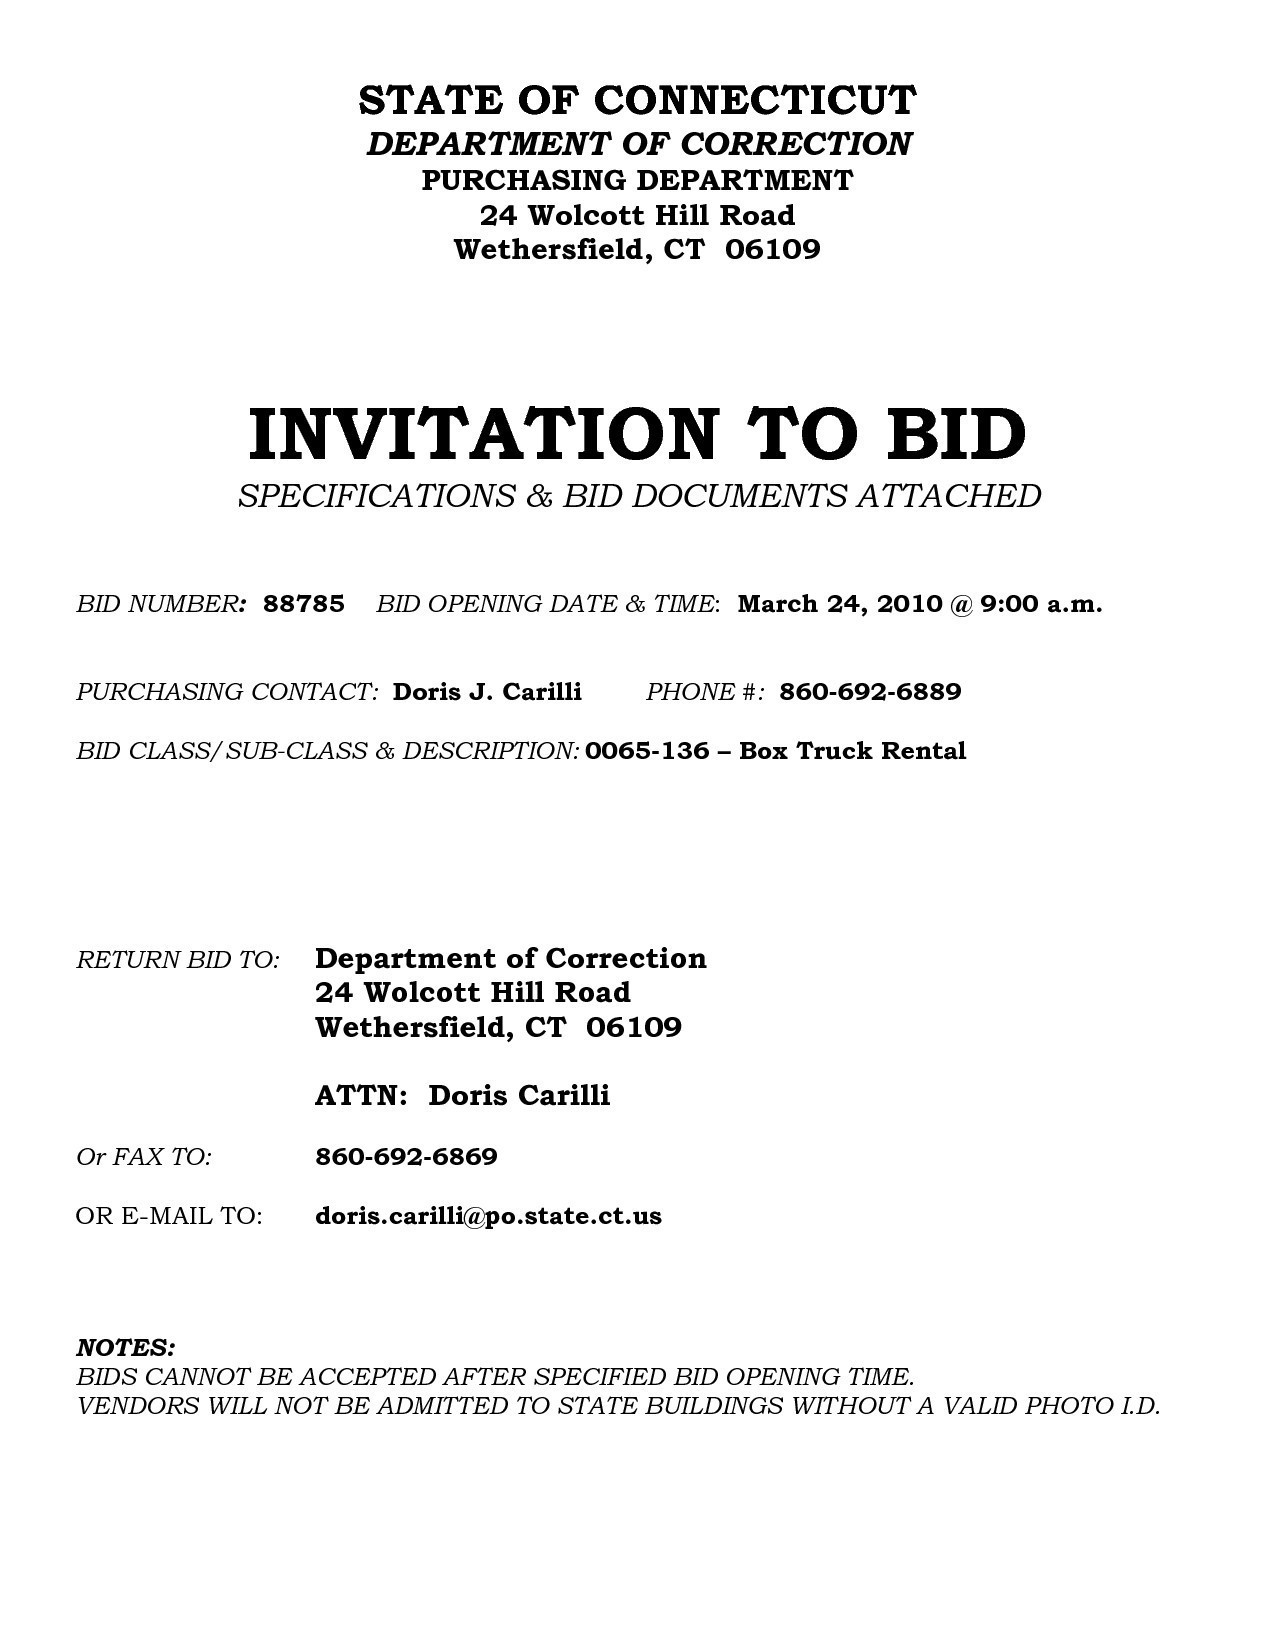 Invitation to Bid Letter Template - Invitation to Bid Template Construction List Sample Letter to